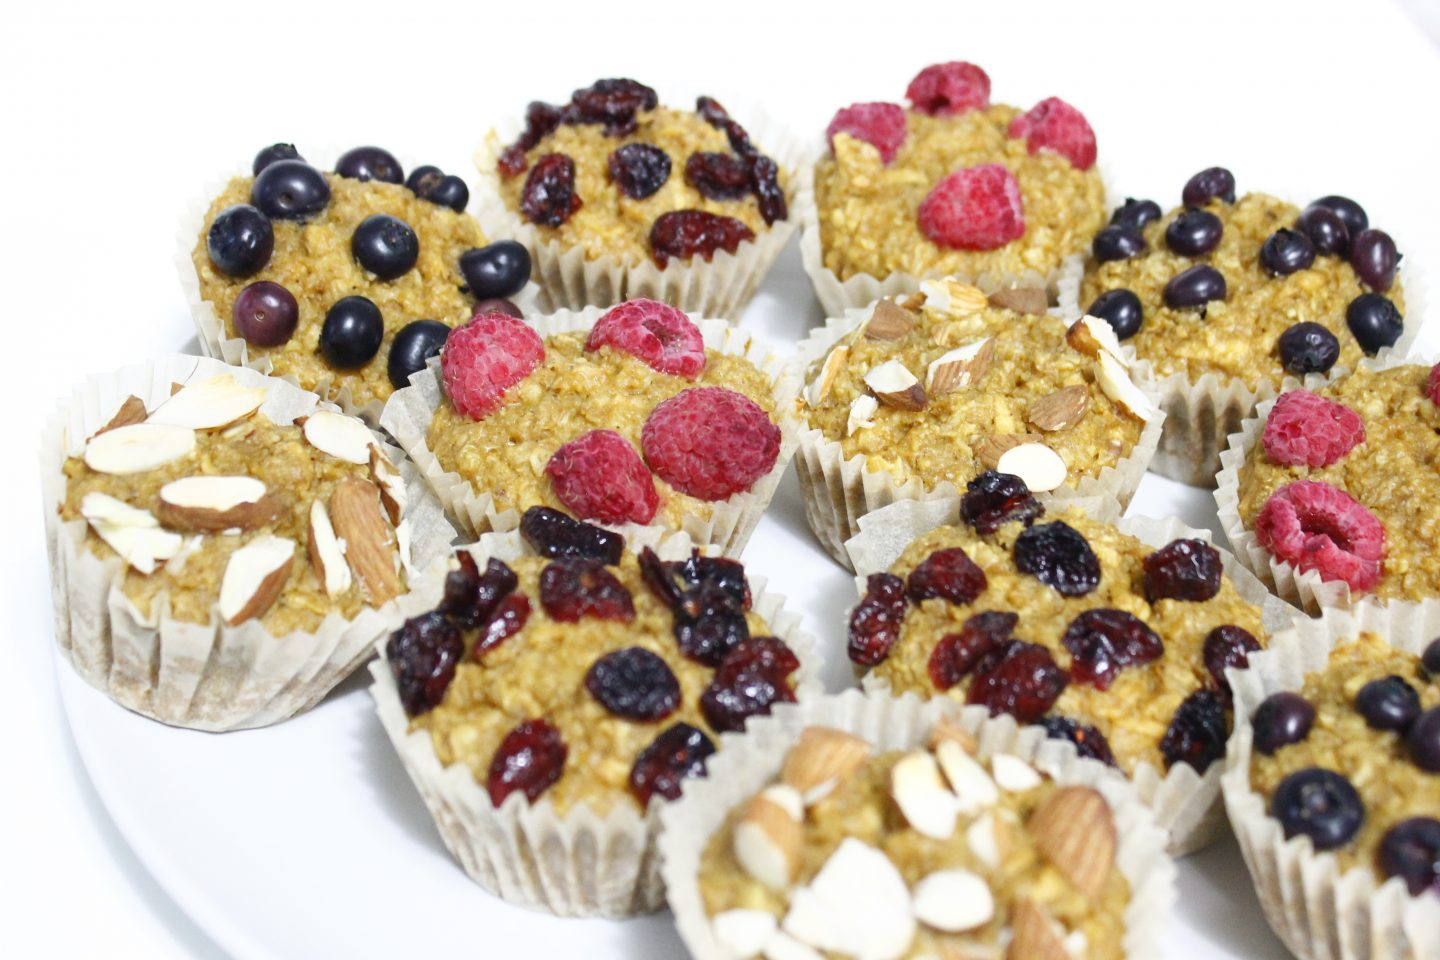 Healthy Muffins & Life Update